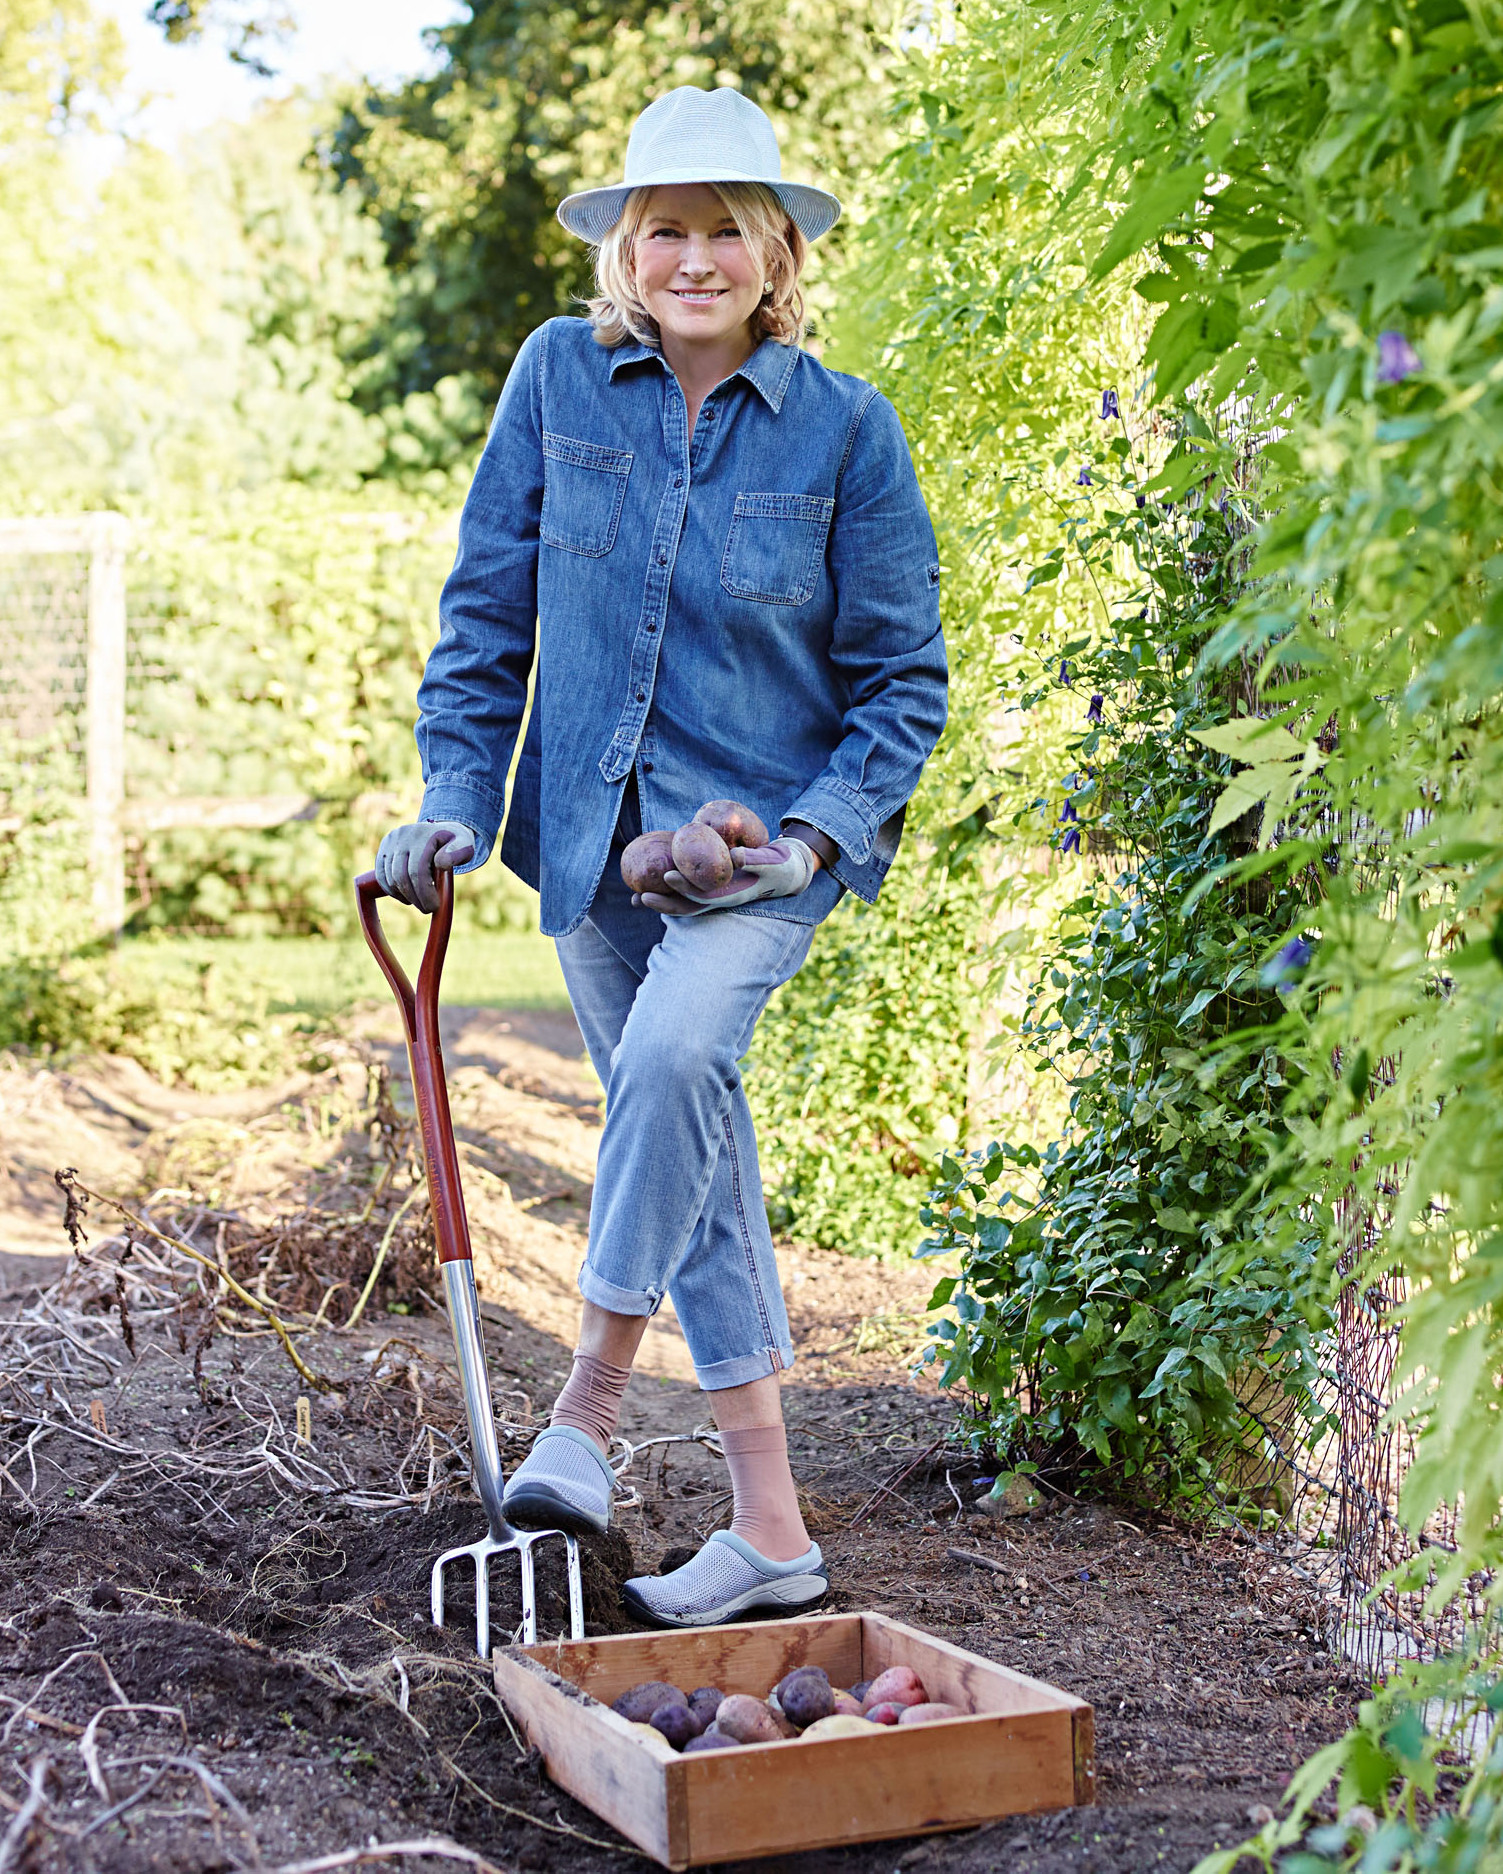 Martha Stewart harvesting potatoes in her garden